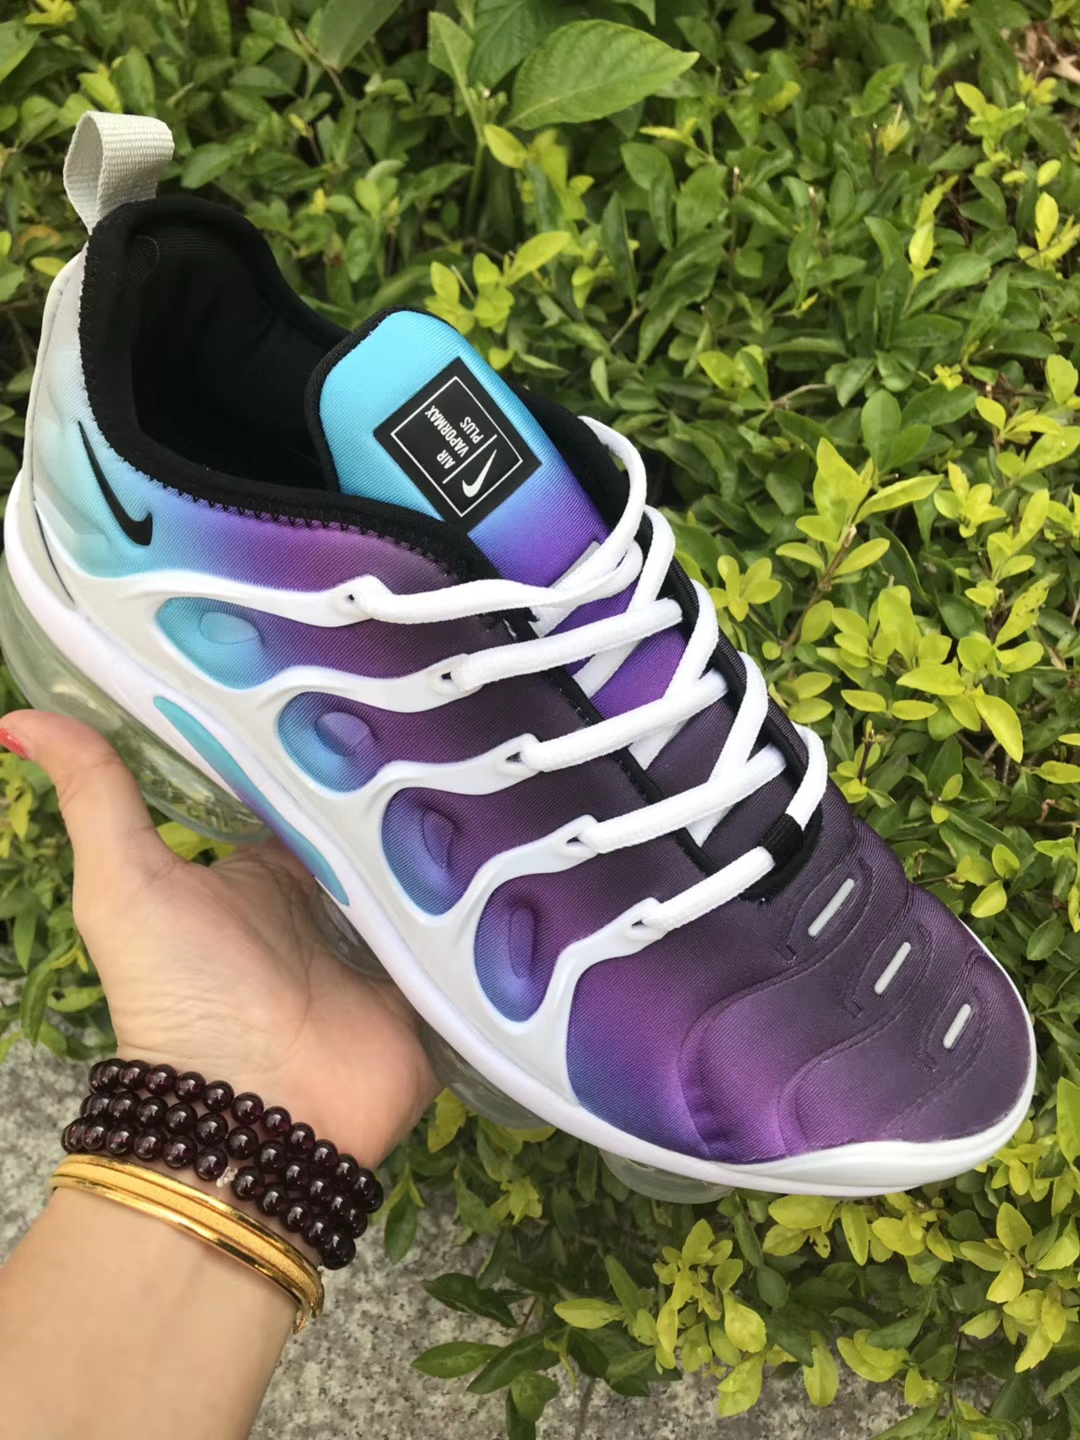 Nike Air Vapormax Plus 2018 TN Purple White Blue Shoes